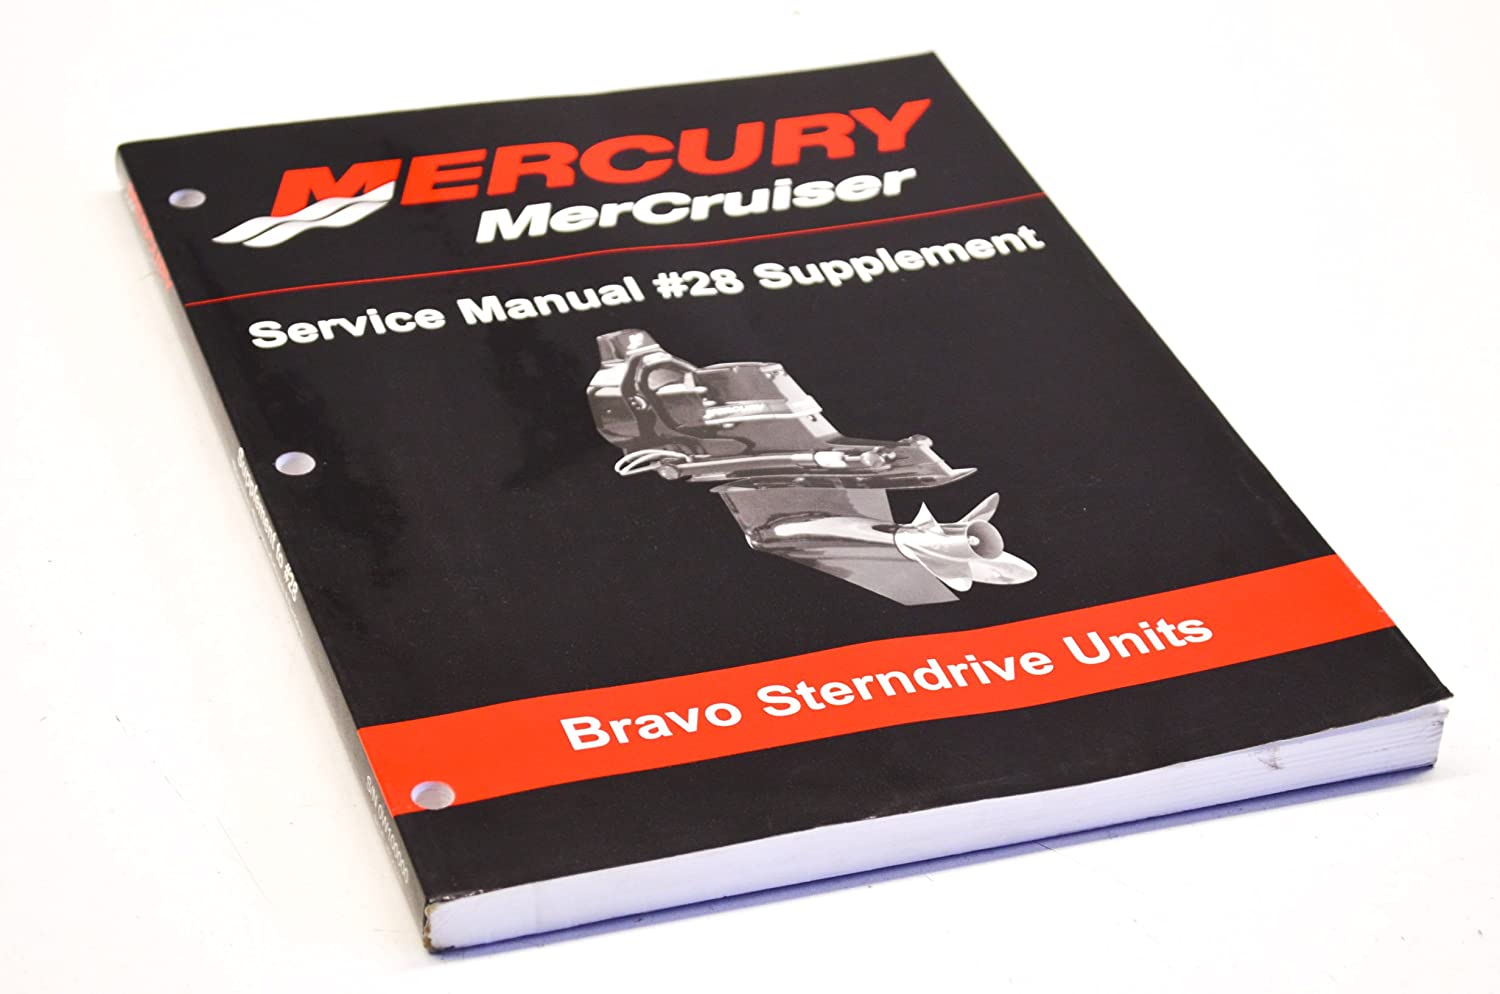 Amazon.com: Mercury 90-863160030 Service Manual #28 Supplement QTY 1:  Automotive